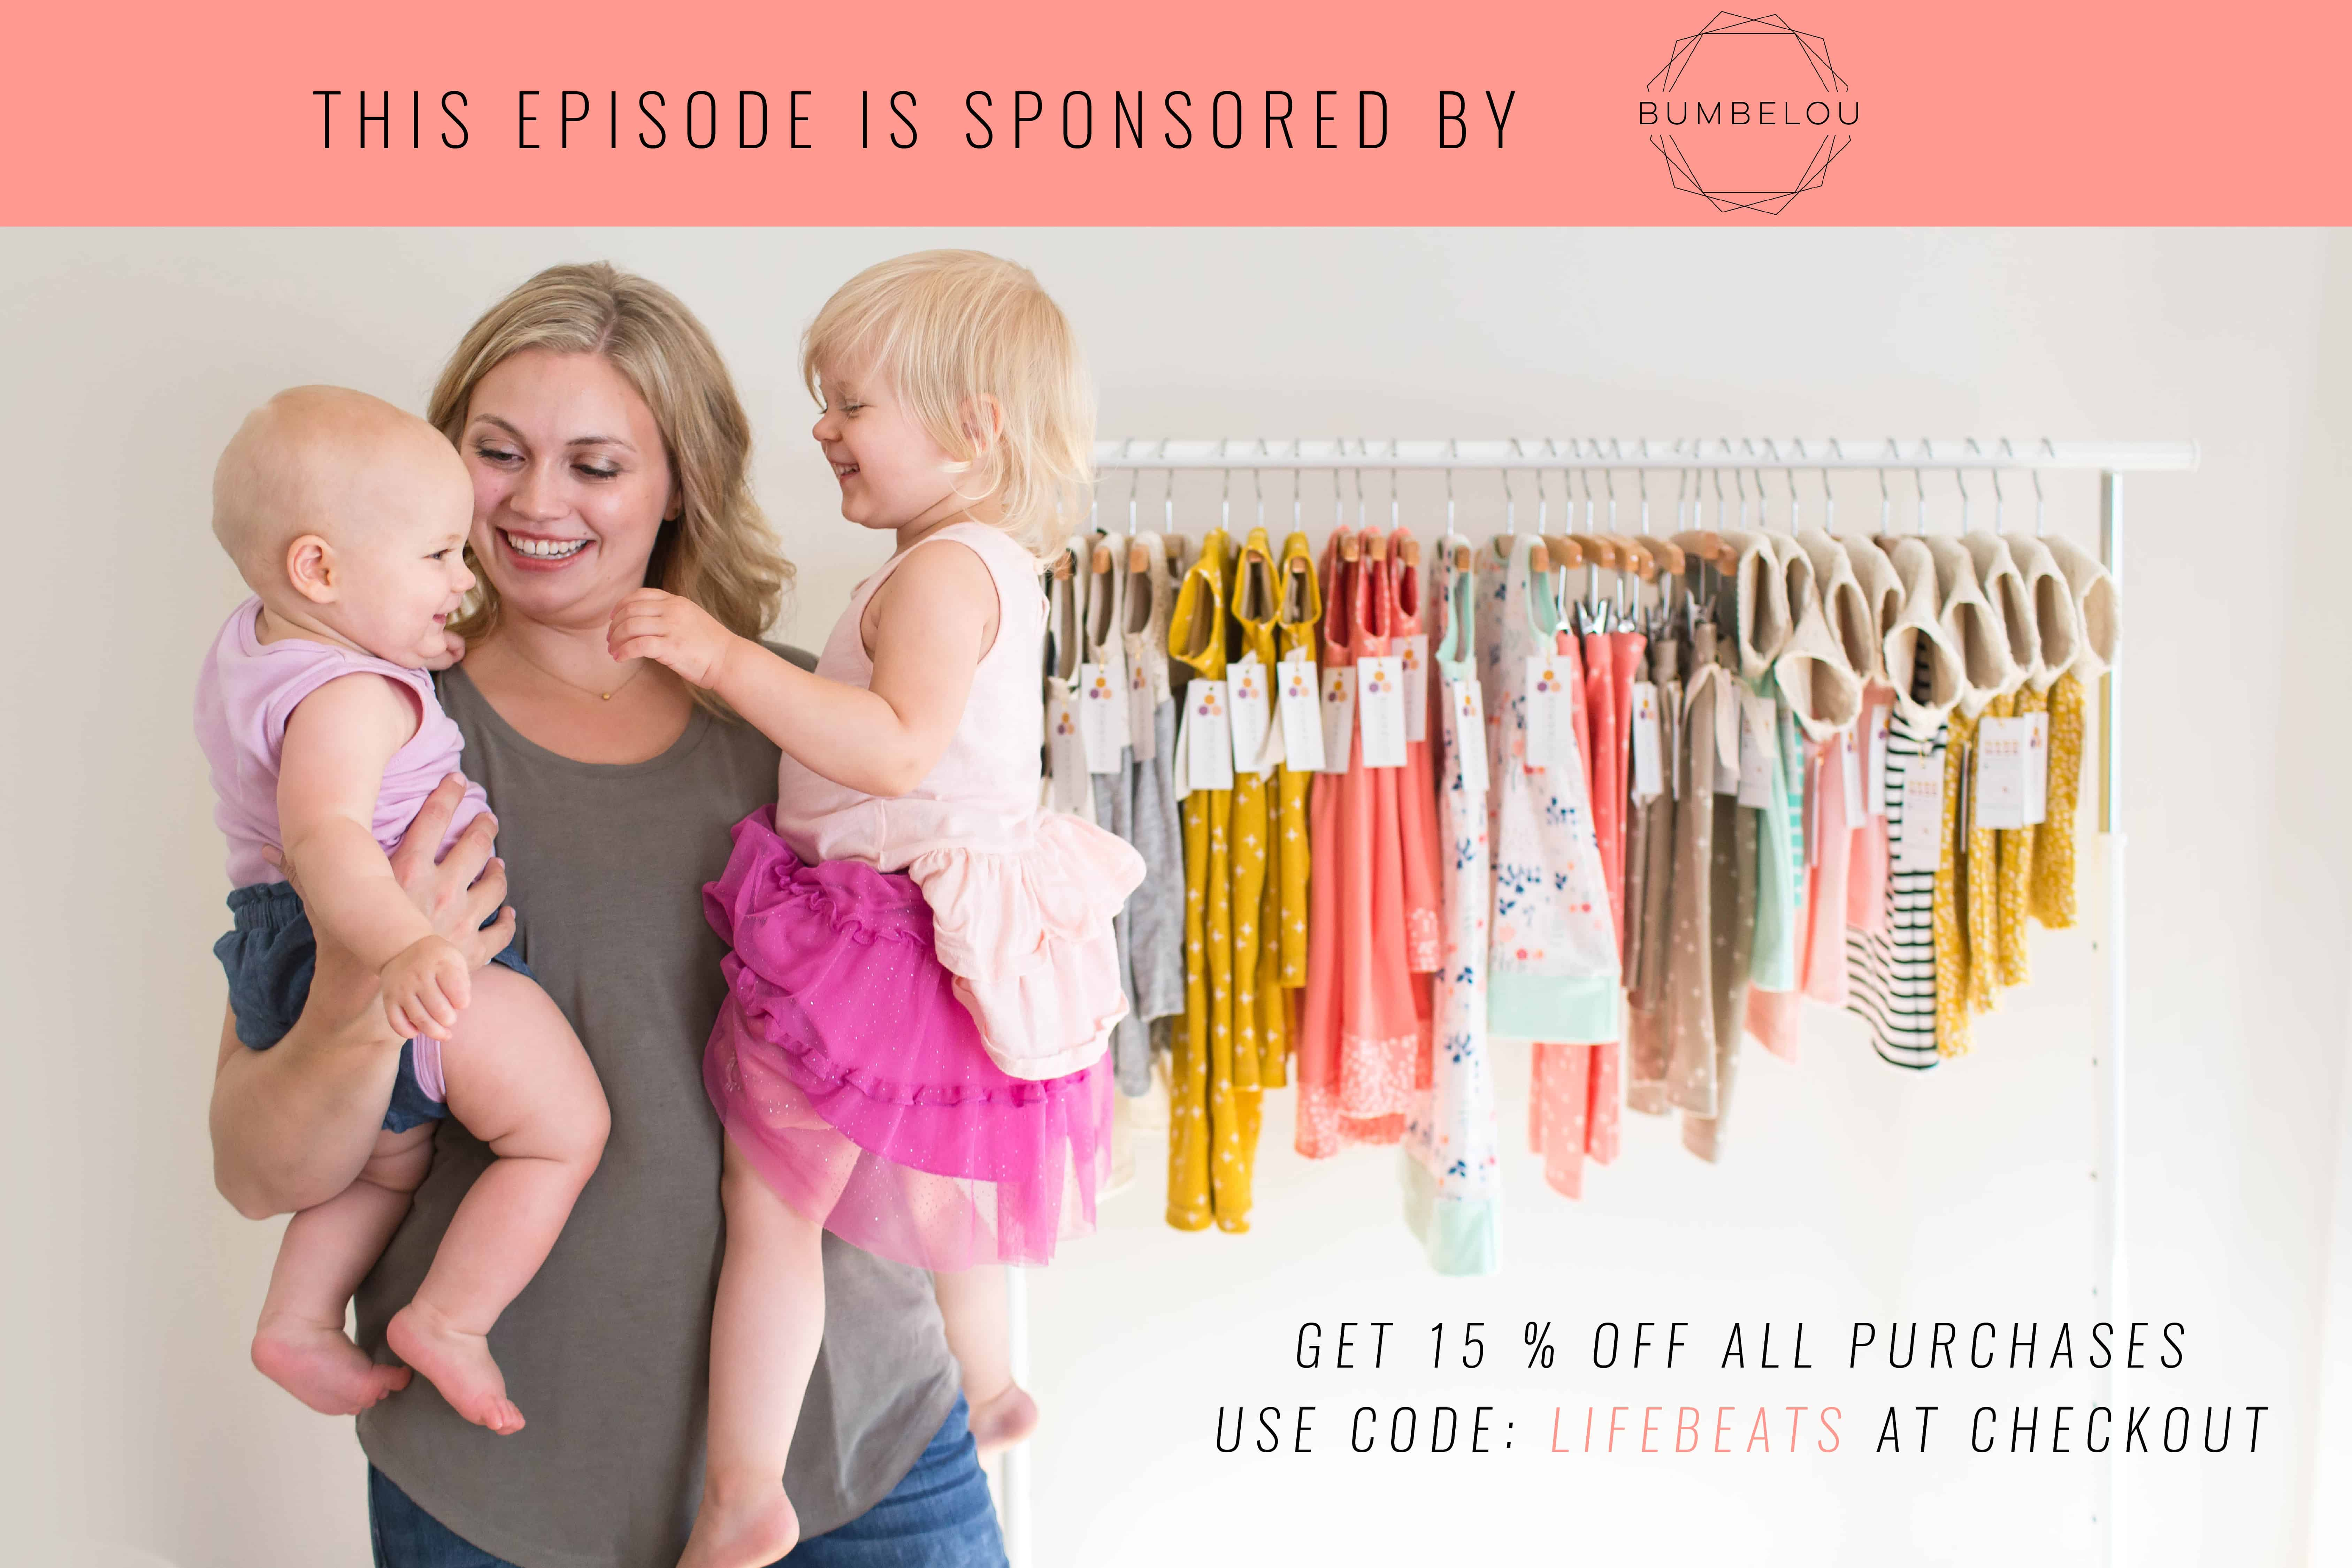 Bumbelou sponsorship children's clothing podcast twirly dresses bows colors of rainbow